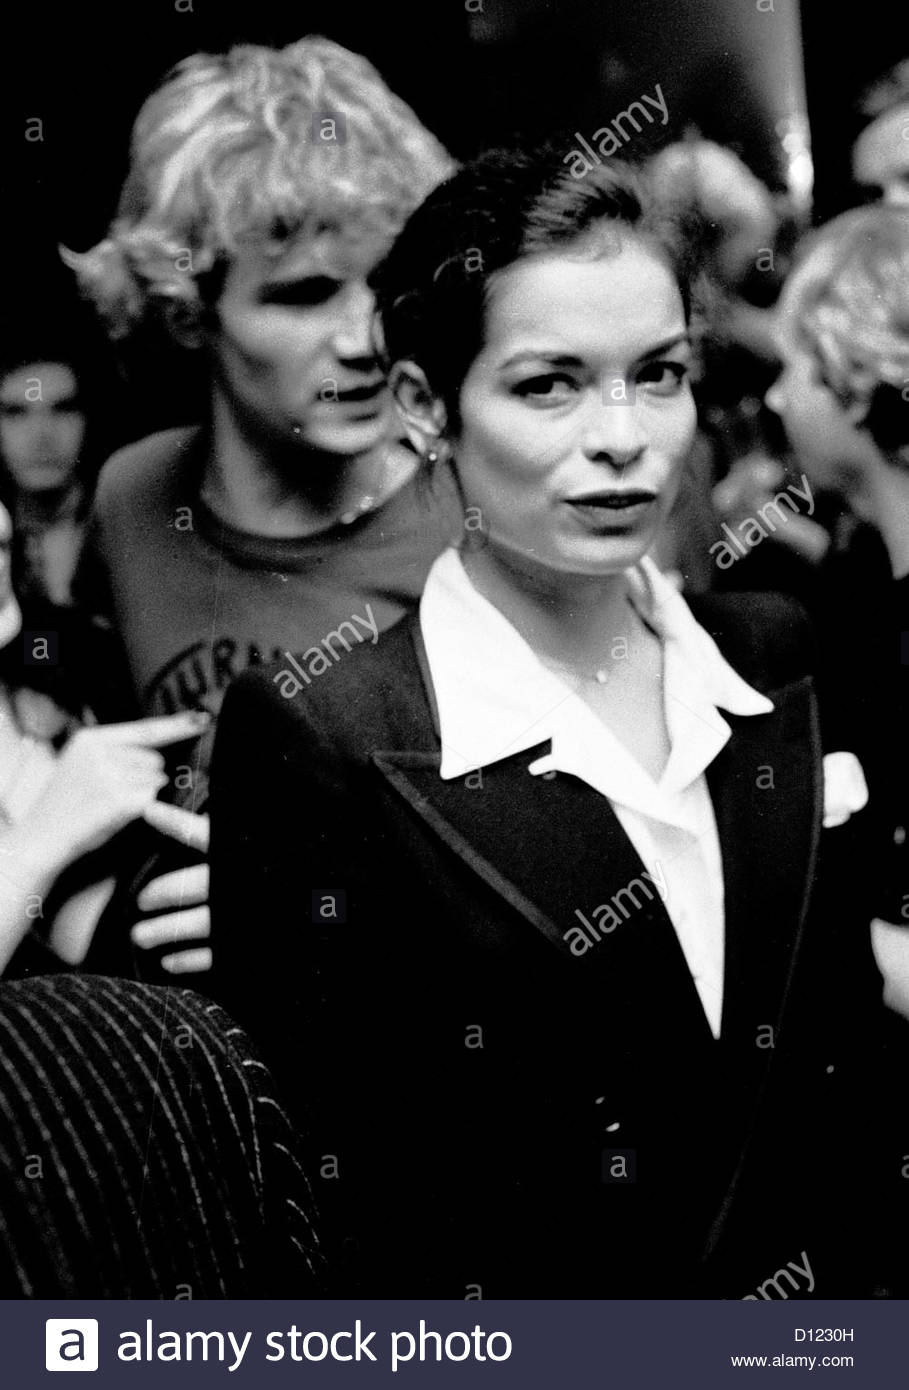 bianca jagger portrait famous people person perso Stock Photo